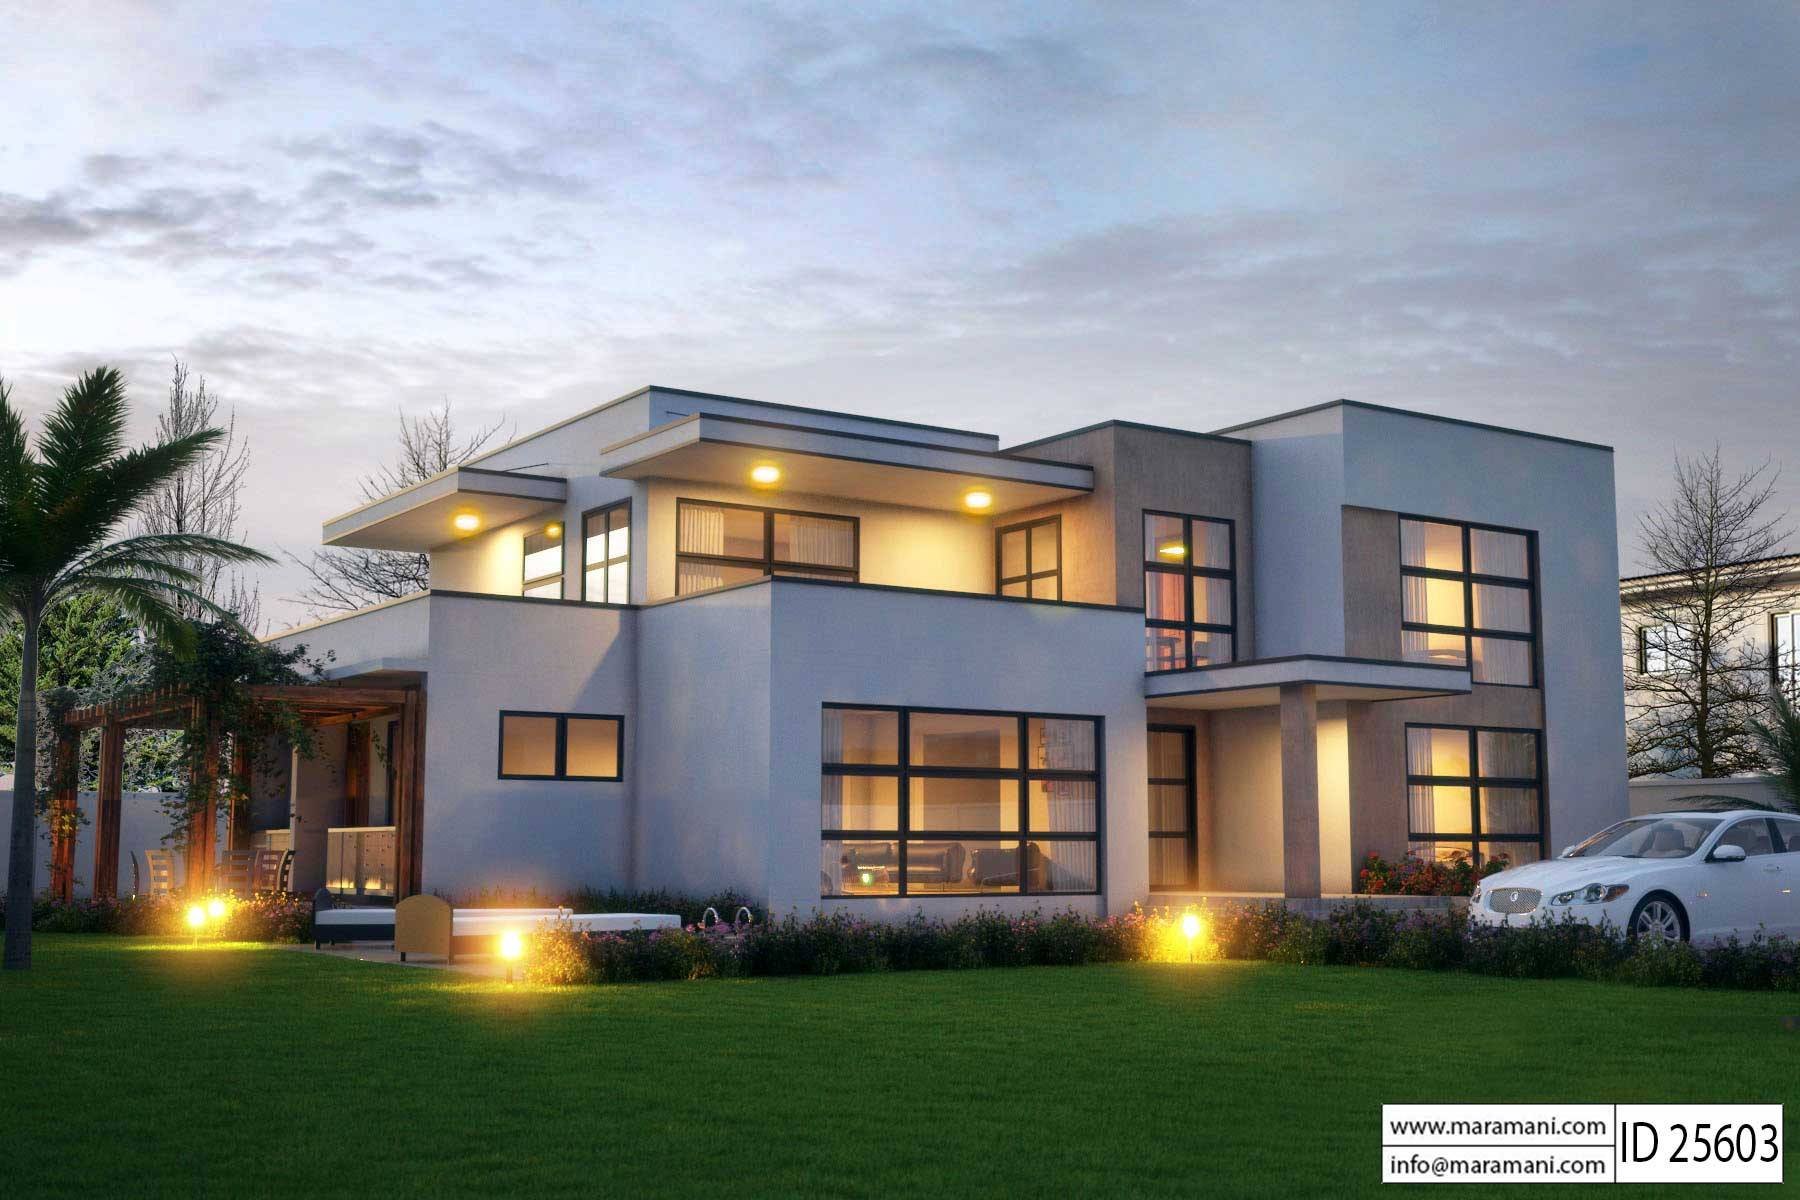 five bedroom houses modern 5 bedroom house design id 25603 floor plans by maramani 1663